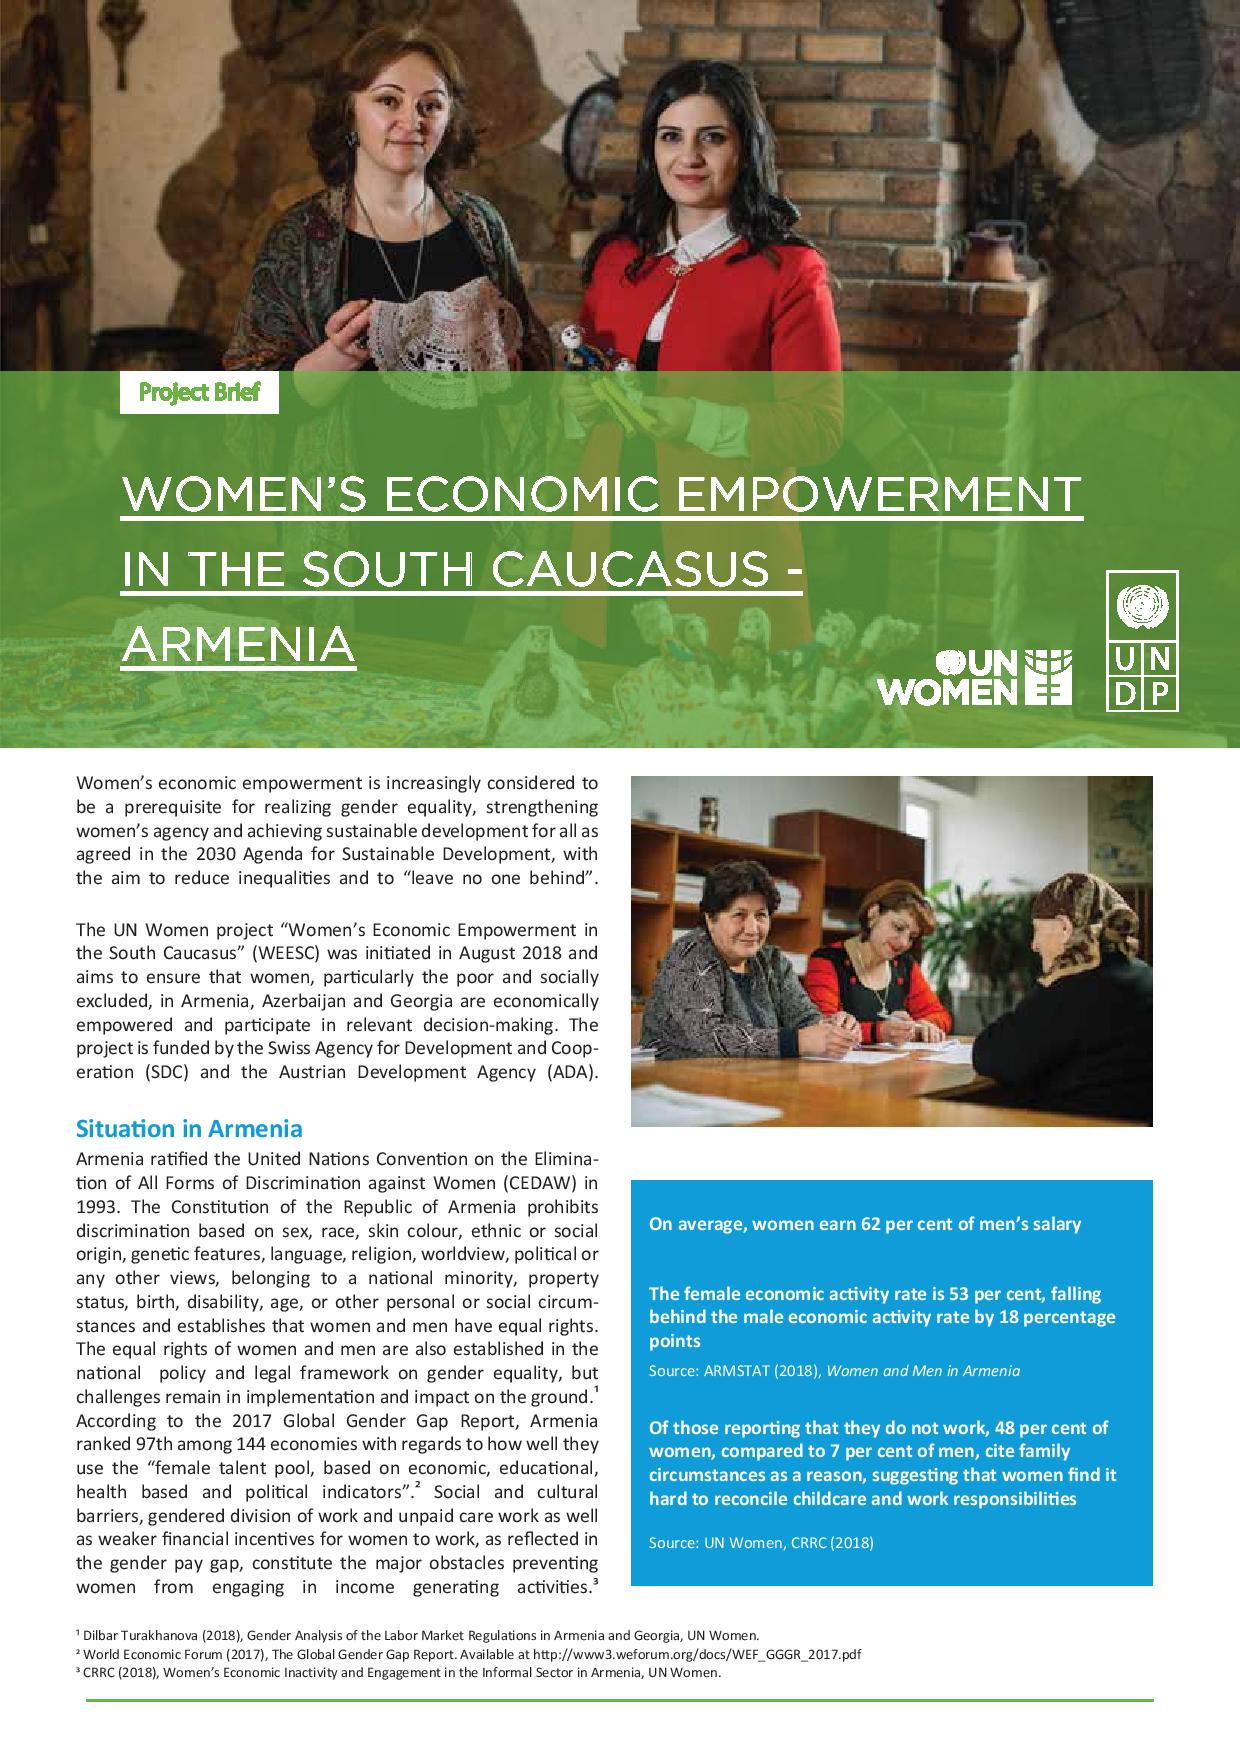 Women's Economic Empowerment - Armenia